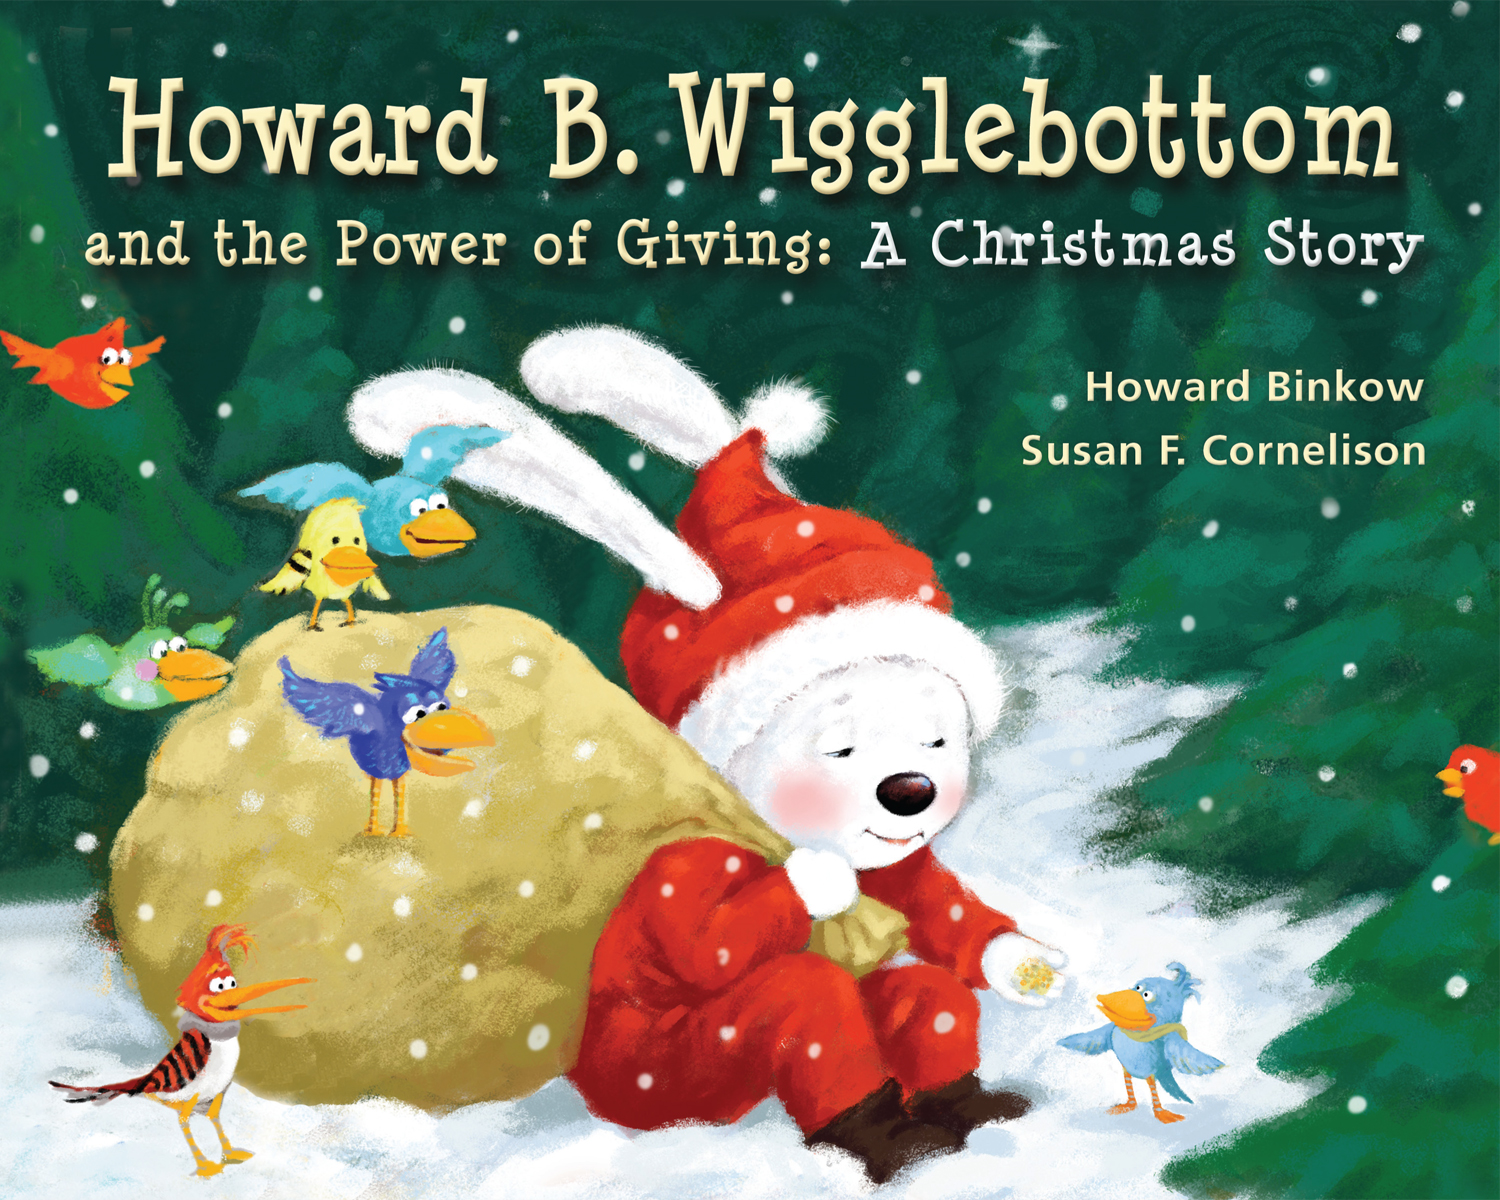 Howard B. Wigglebottom and the Power of Giving